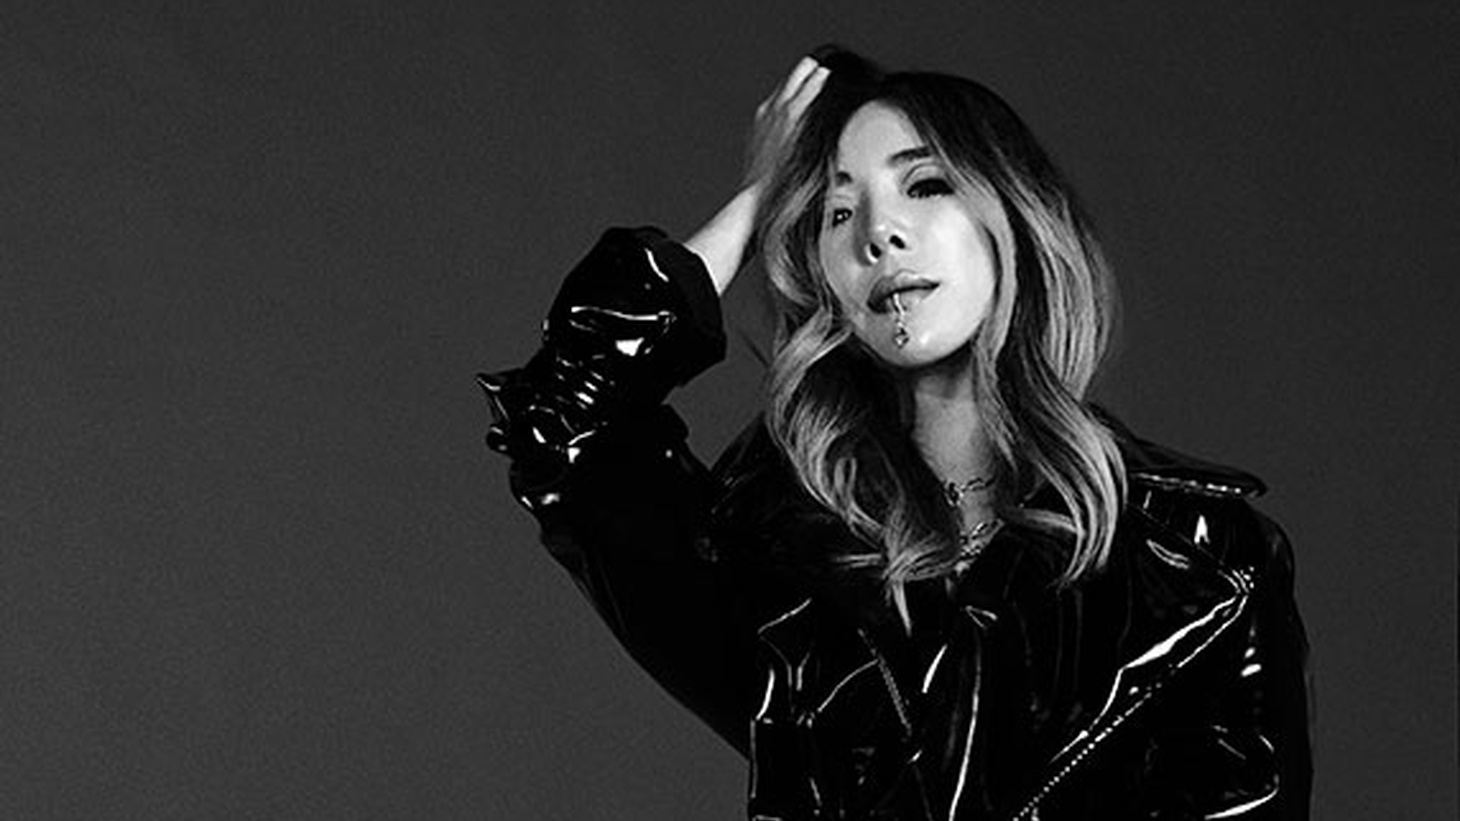 Jennifer Lee, A.K.A TOKiMONSTA has made her presence known in LA's music scene producing fearless kinetic-psychedelic hip-hop beats over the past few years. We are thrilled to welcome TOKiMONSTA, who's in the middle of a world tour, to Metropolis with an exclusive mix.